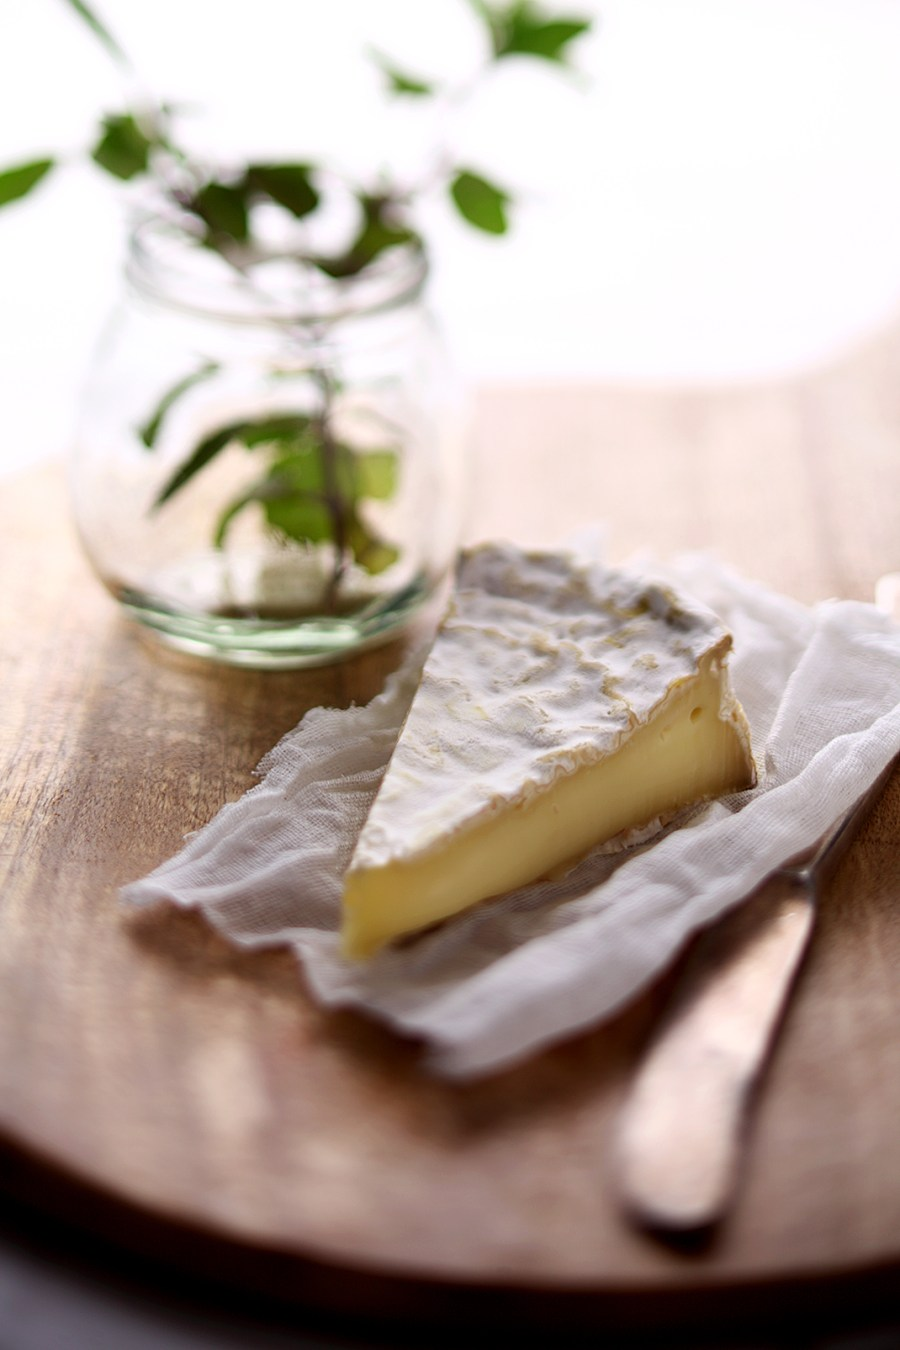 Brie - courtesy The Spotted Cow Fromagerie